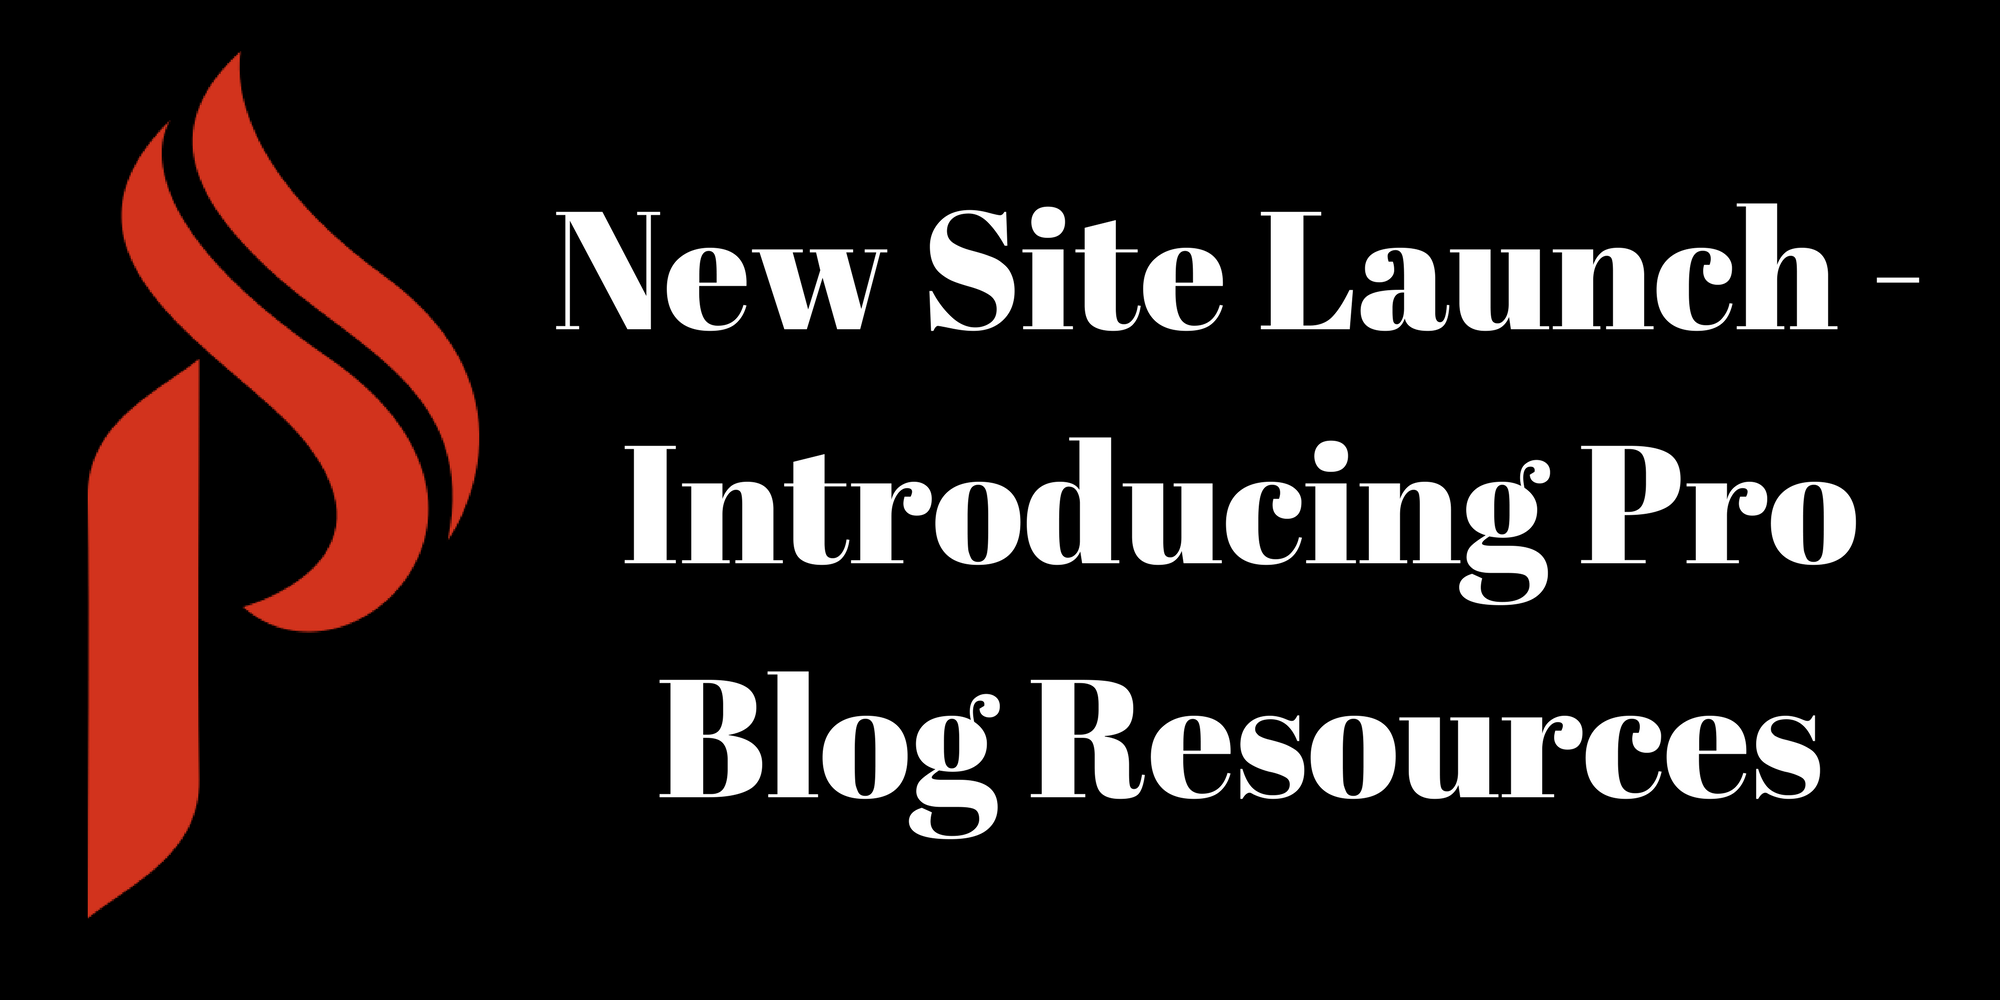 New Site Launch - Introducing Pro Blog Resources